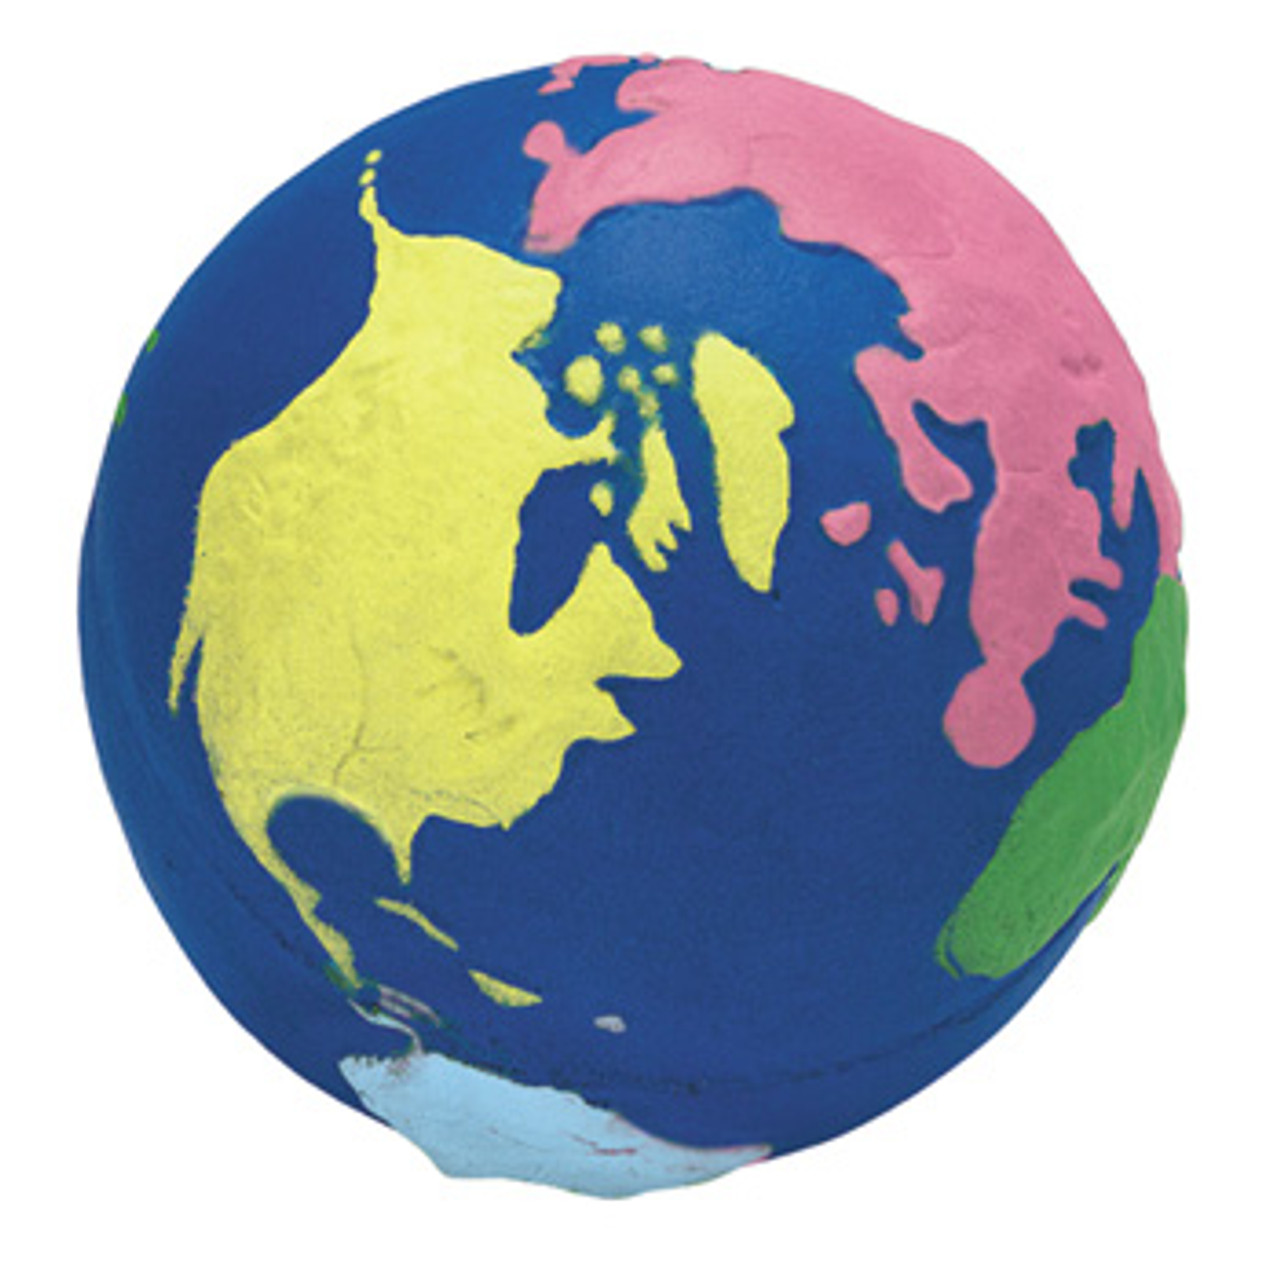 Foam Stress Ball with imprint of world; North America is yellow